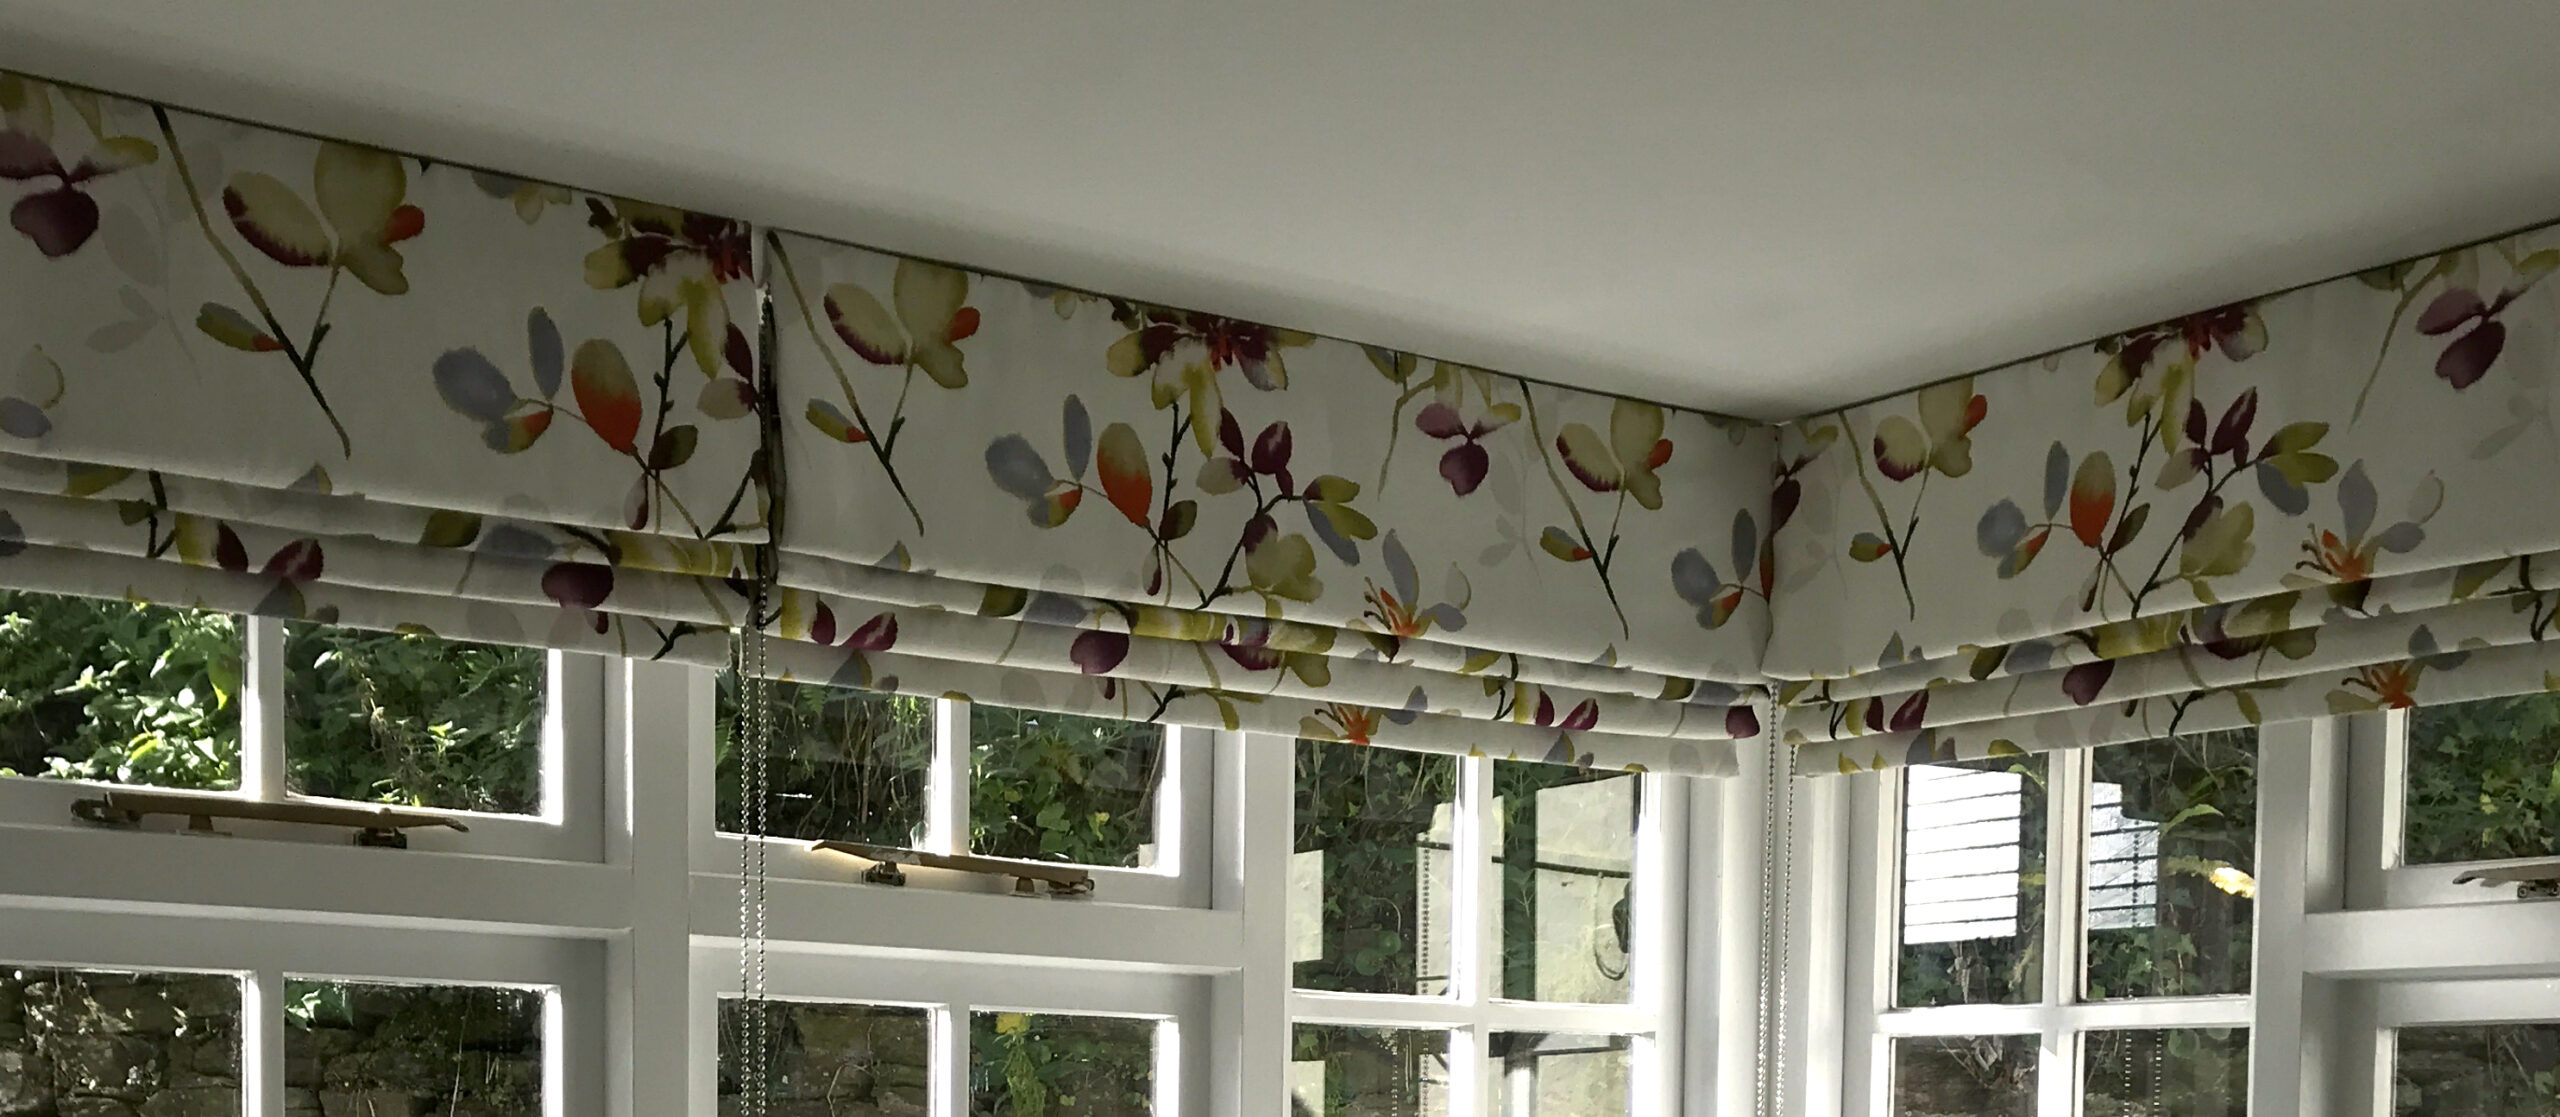 Roman Blinds in bay window.